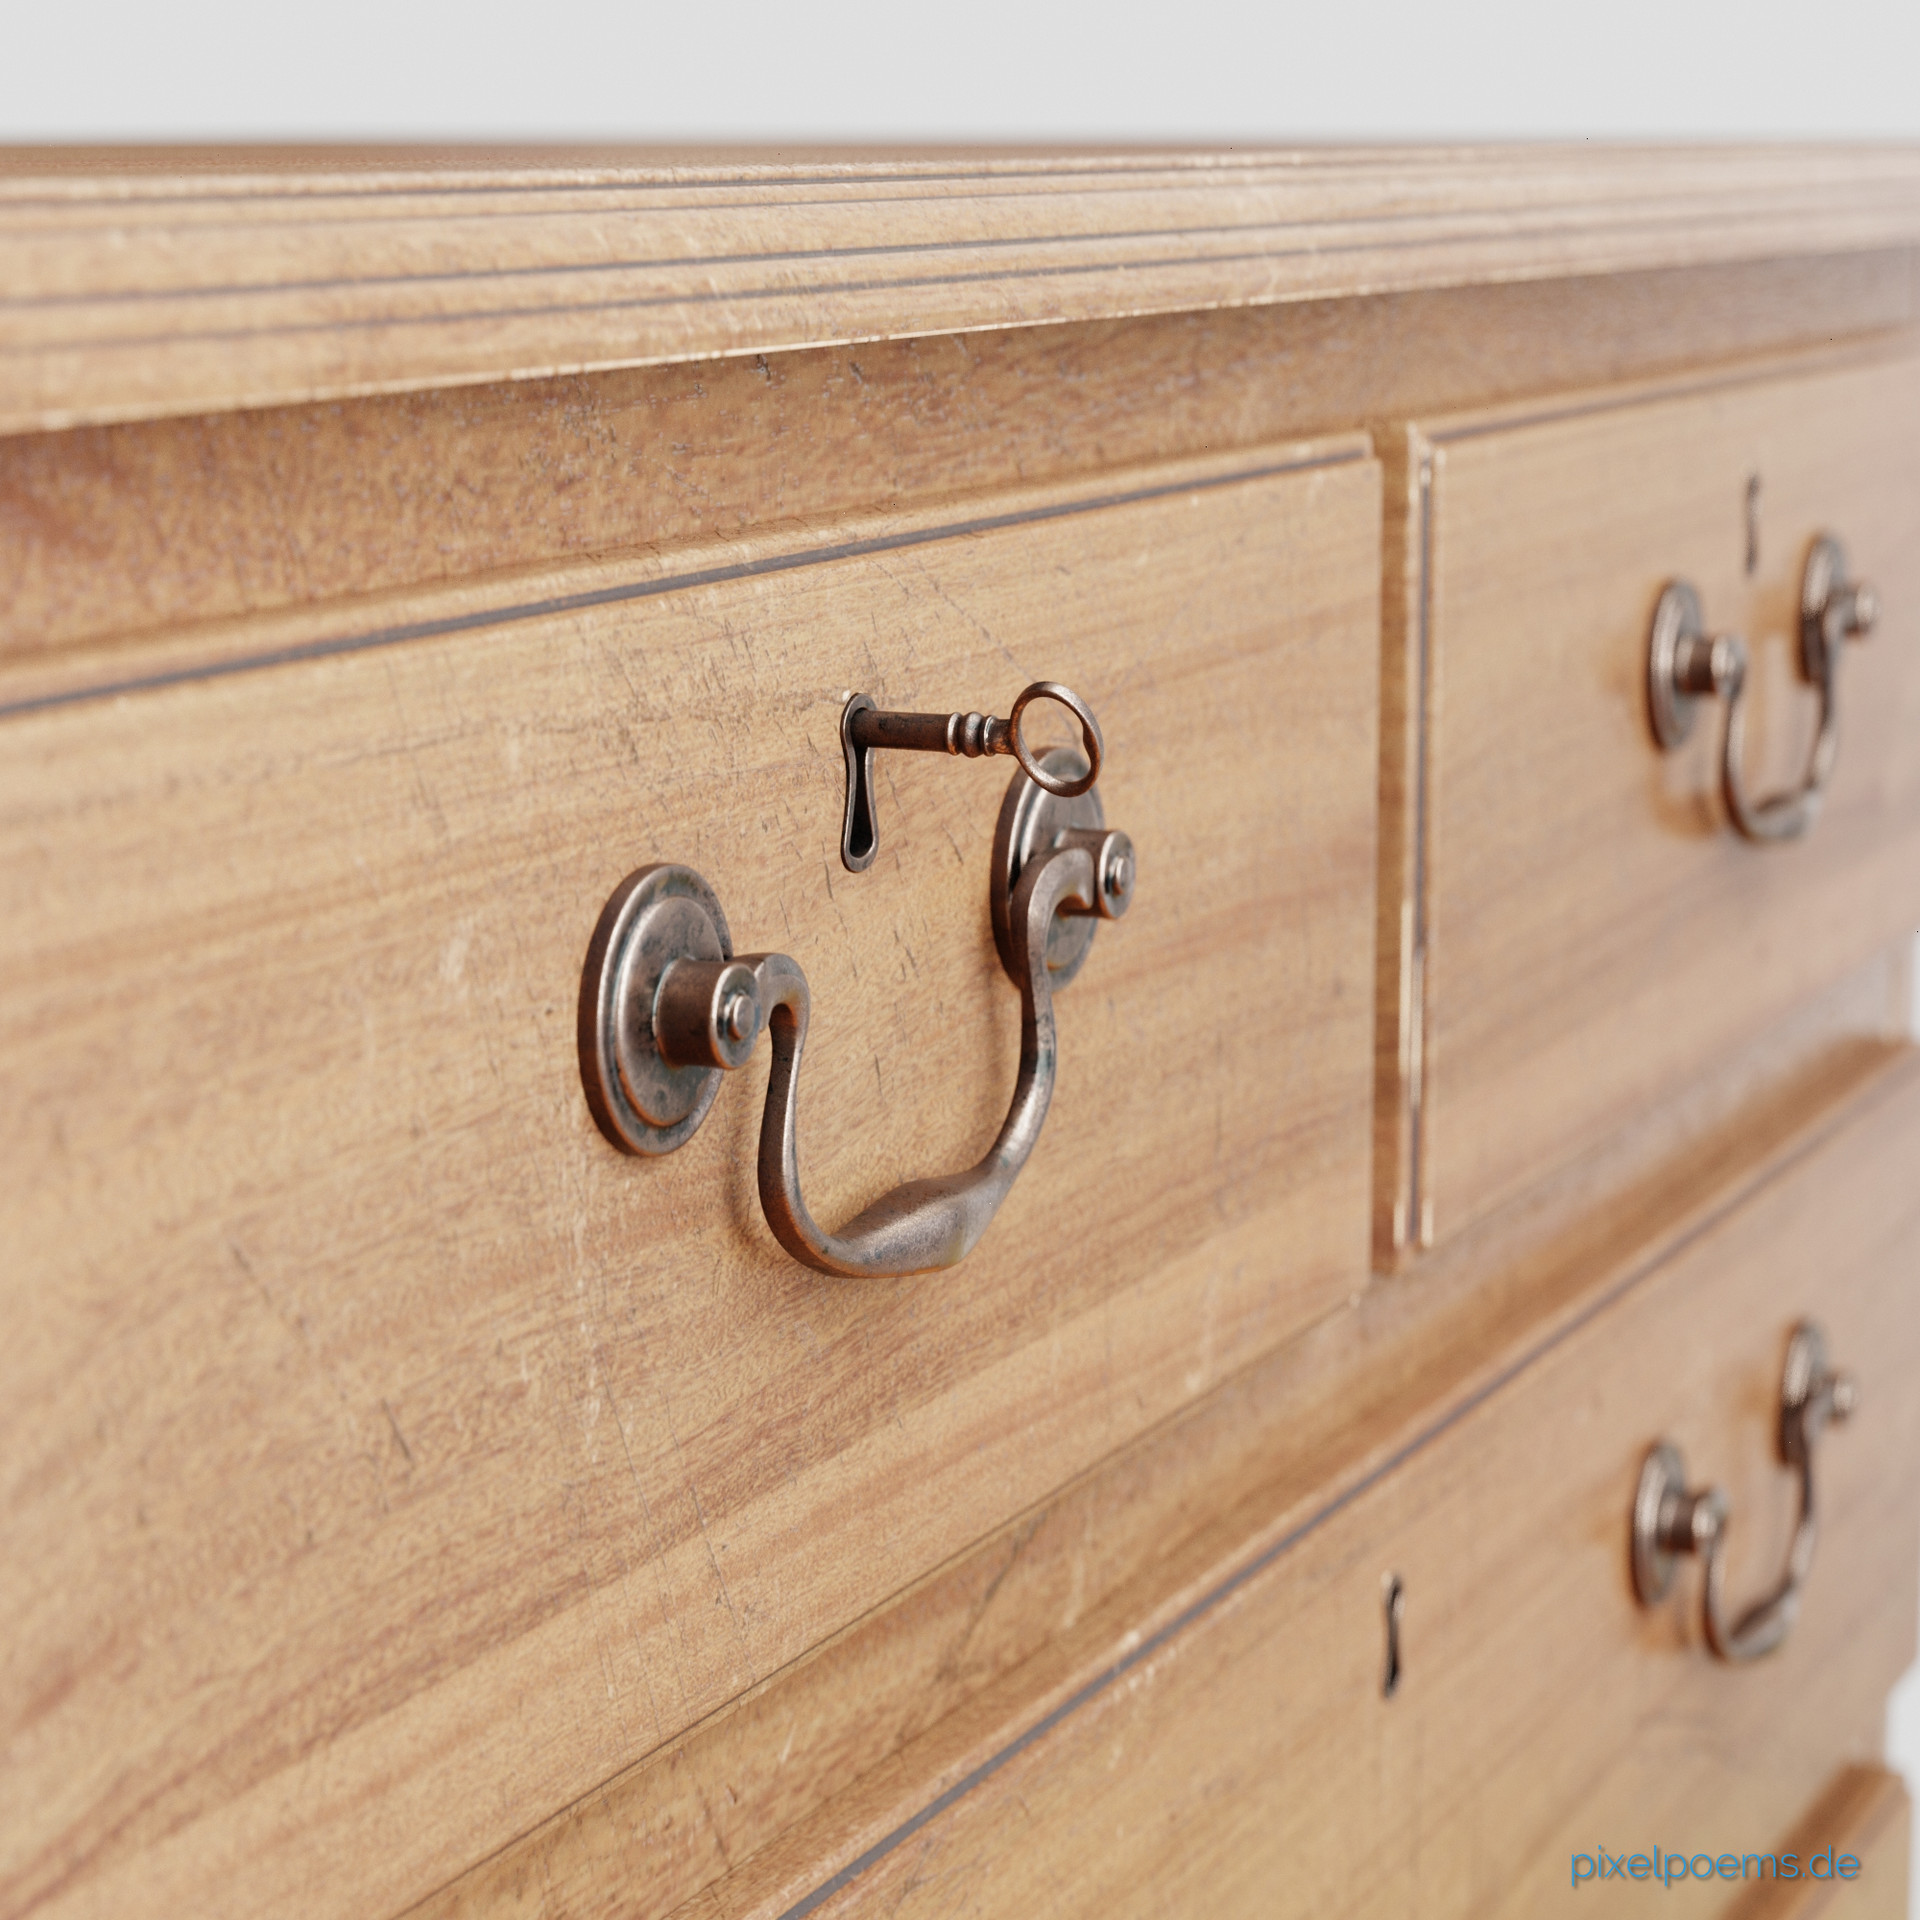 Karl andreas gross mahagony chest of drawers webversion 06